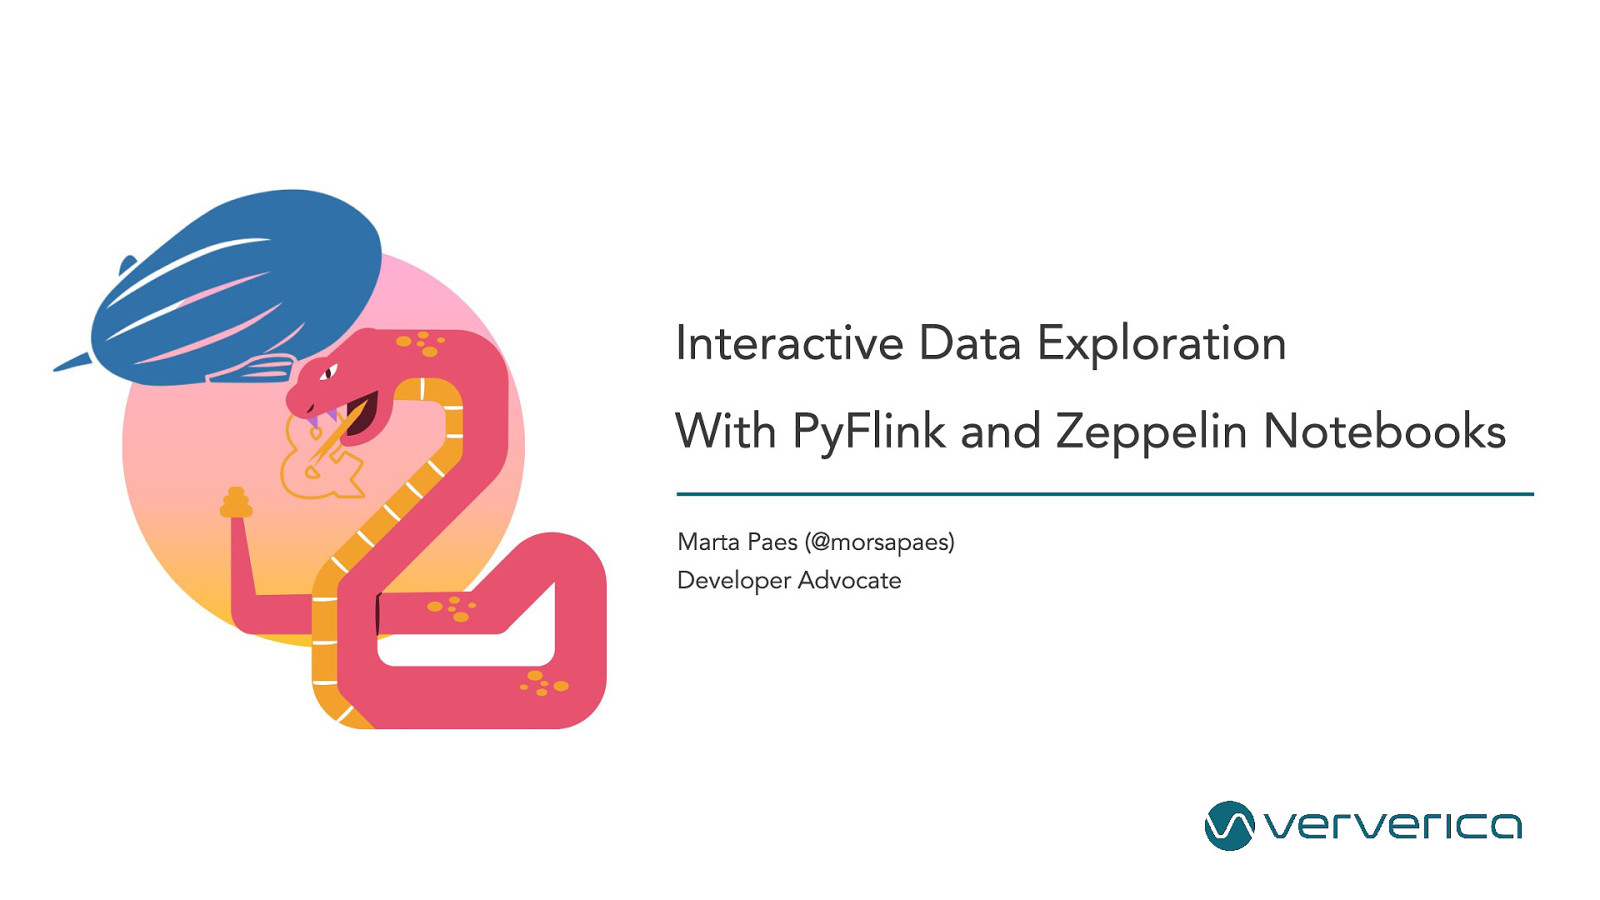 Snakes on a Plane: Interactive Data Exploration with PyFlink and Zeppelin Notebooks